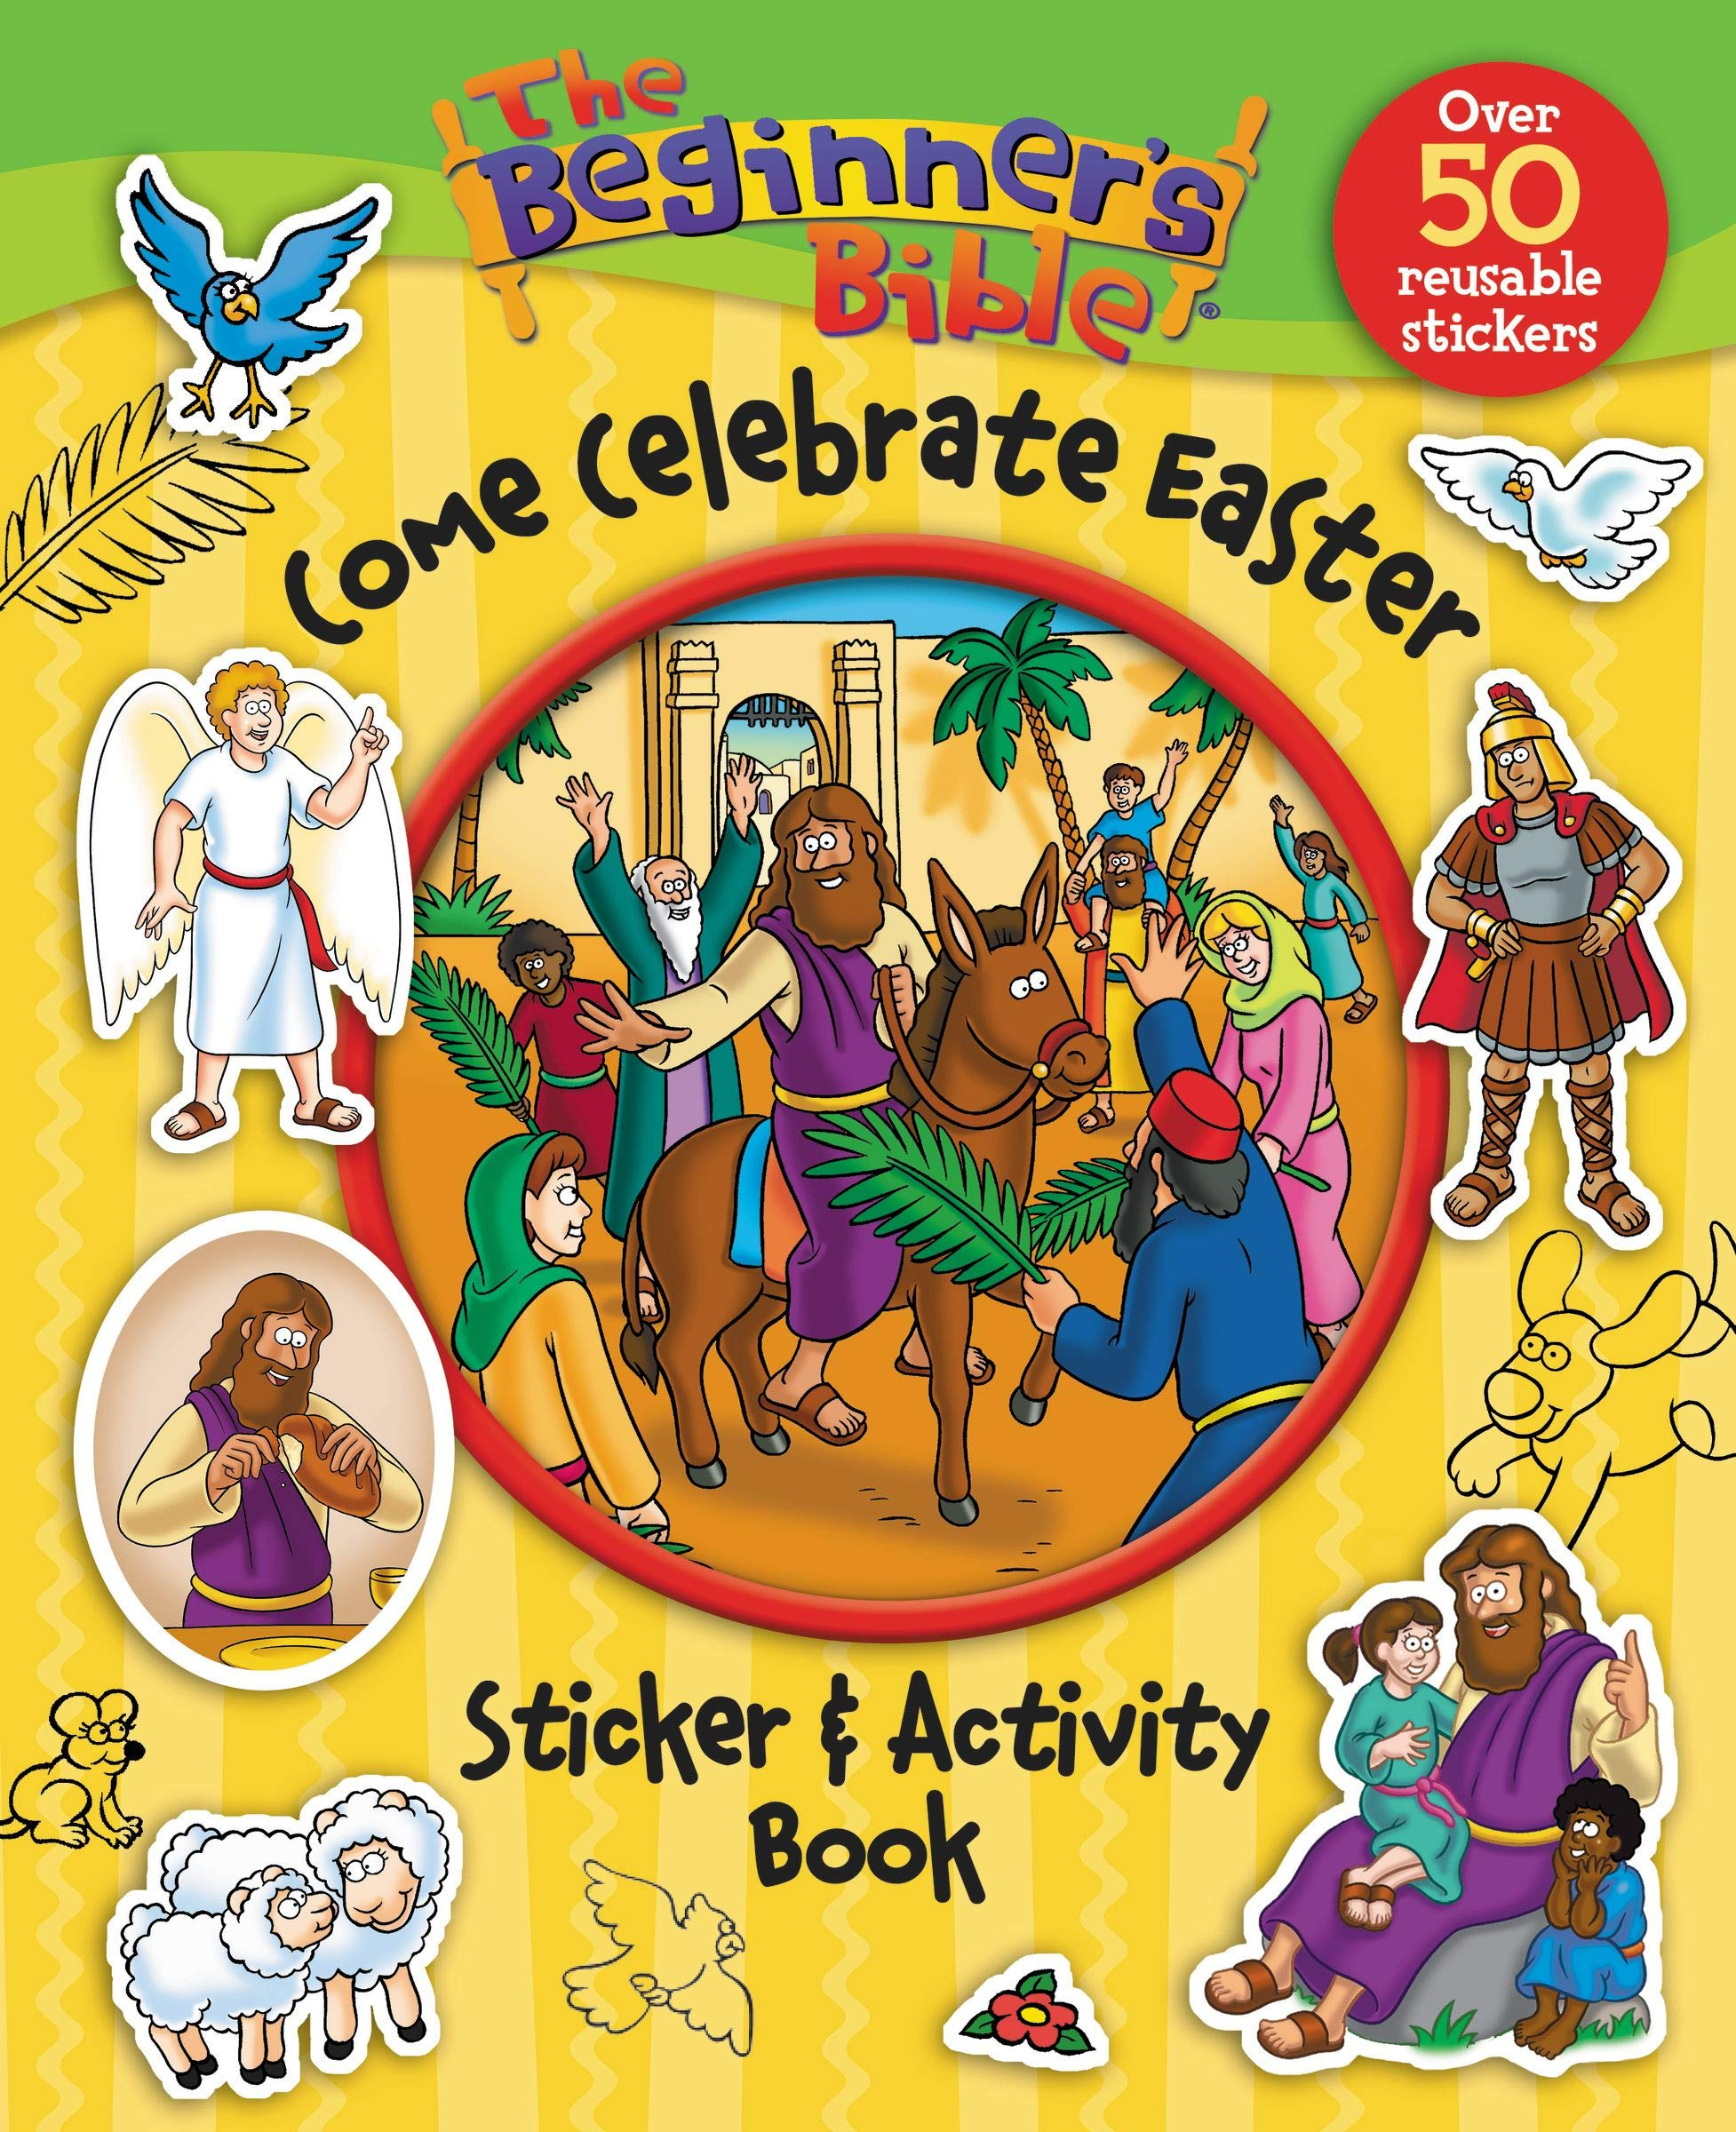 - Amazon.com: The Beginner's Bible Come Celebrate Easter Sticker And